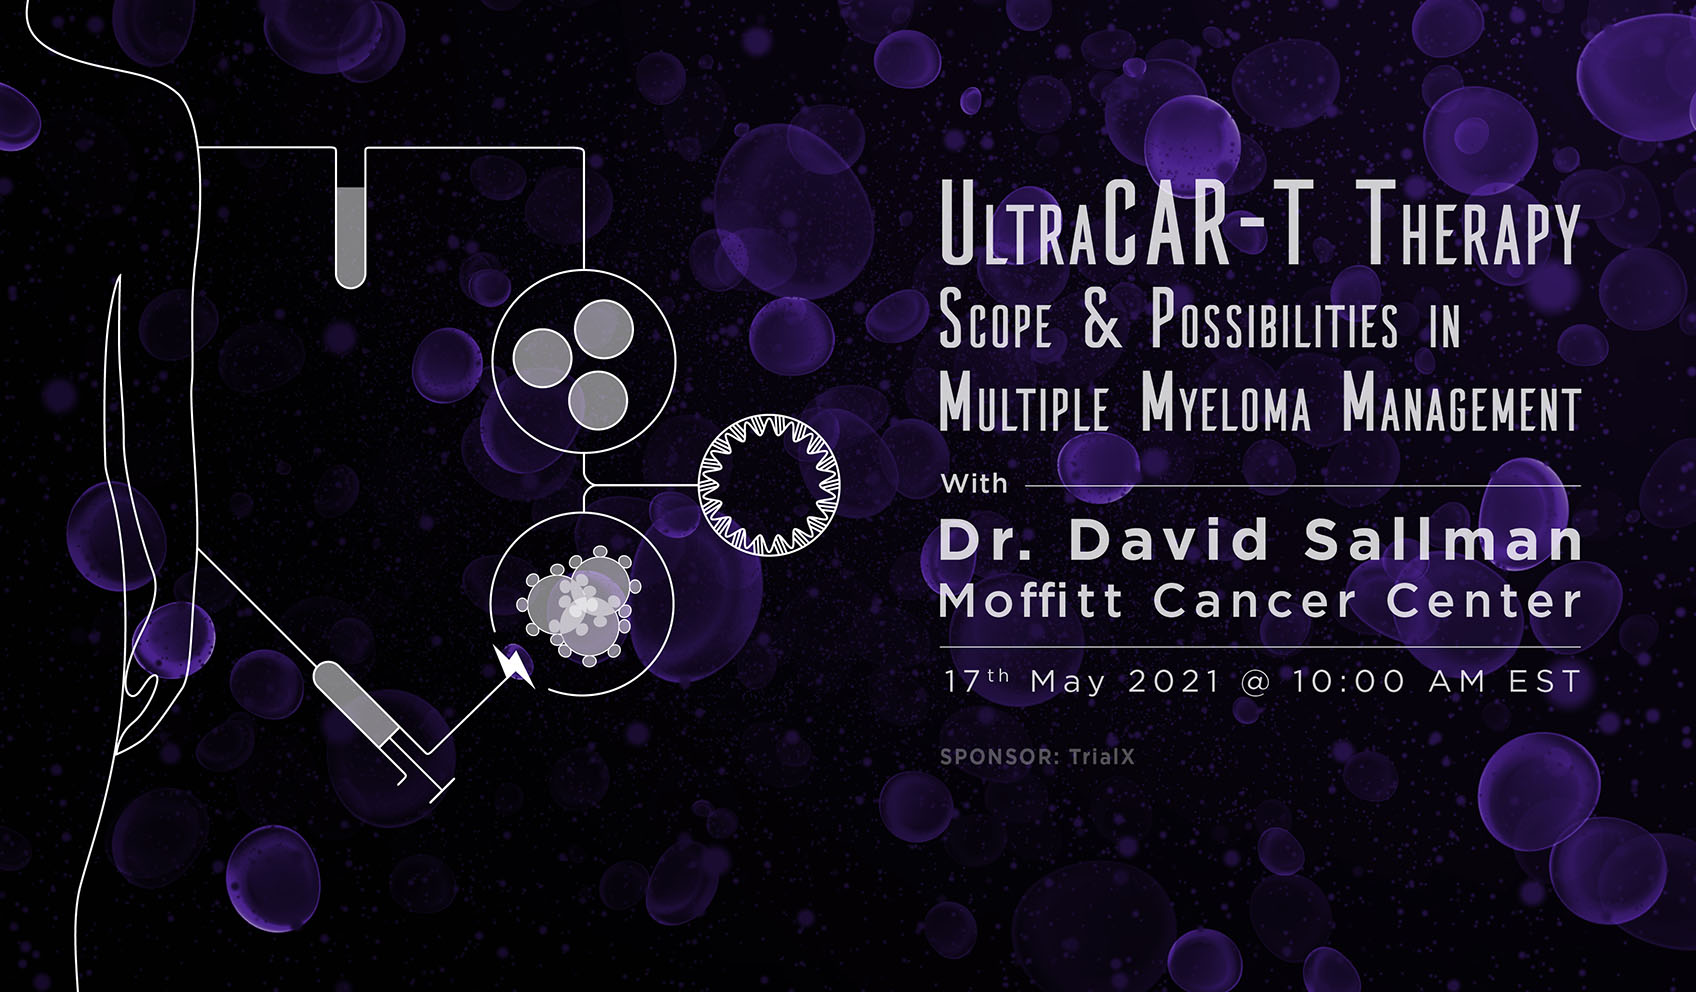 UltraCAR-T Therapy – Scope & Possibilities in Multiple Myeloma Management